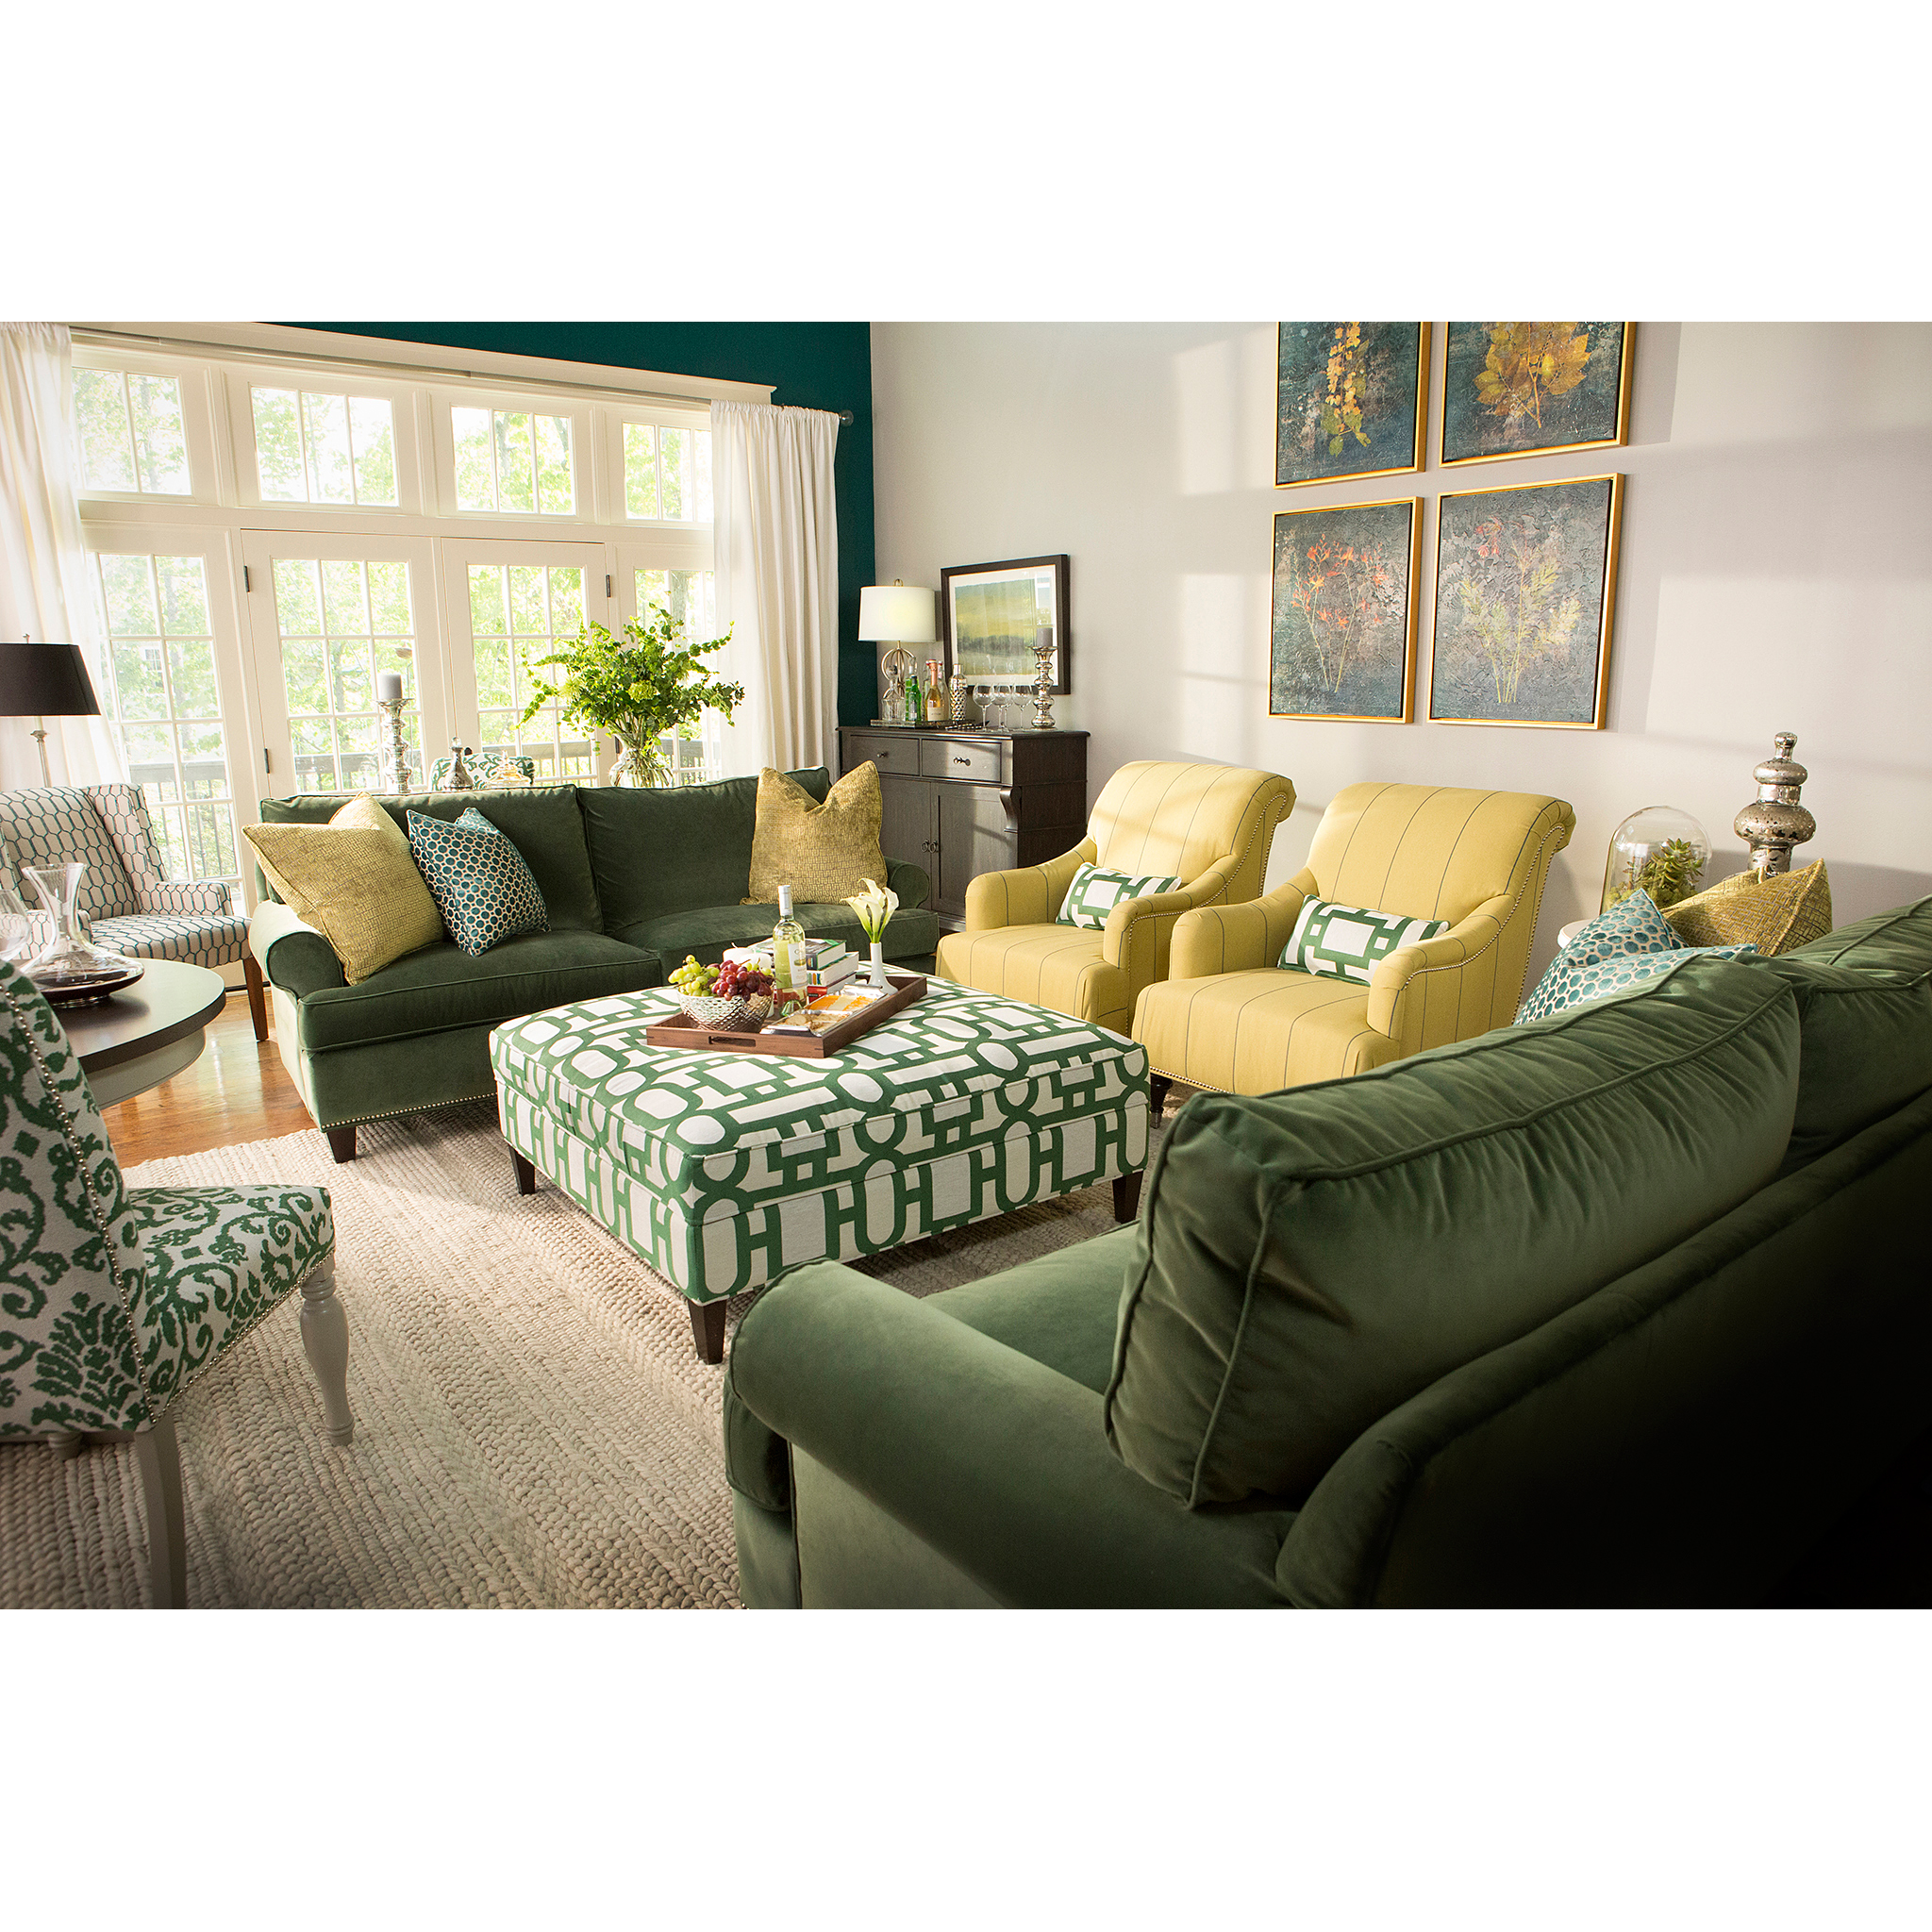 Photograph of Bassett living room furniture for print and web advertising by Craig Anderson